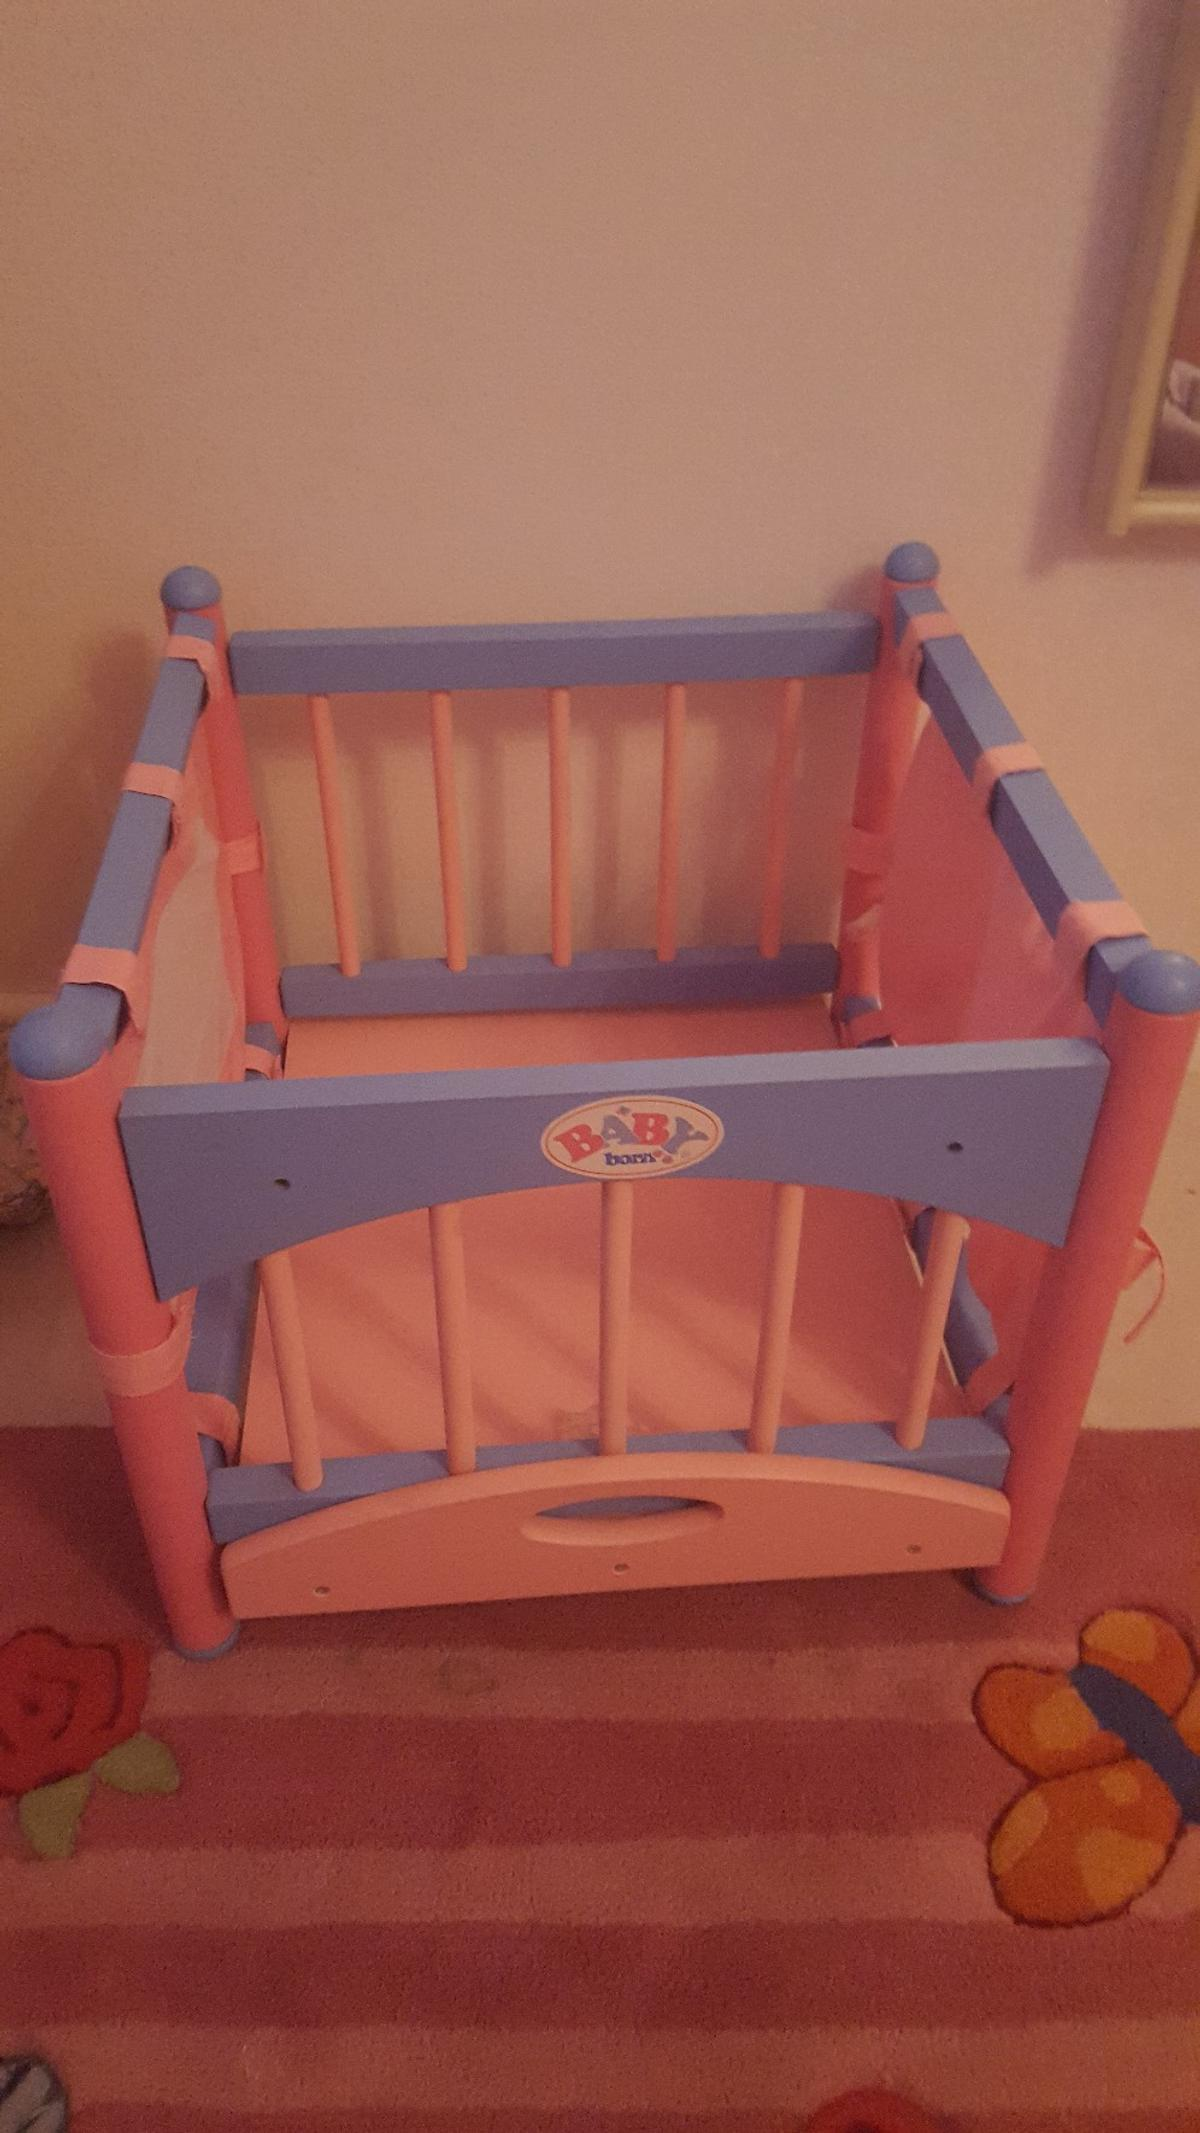 Baby born laufstall in 77815 Bühl for €12.00 for sale - Shpock